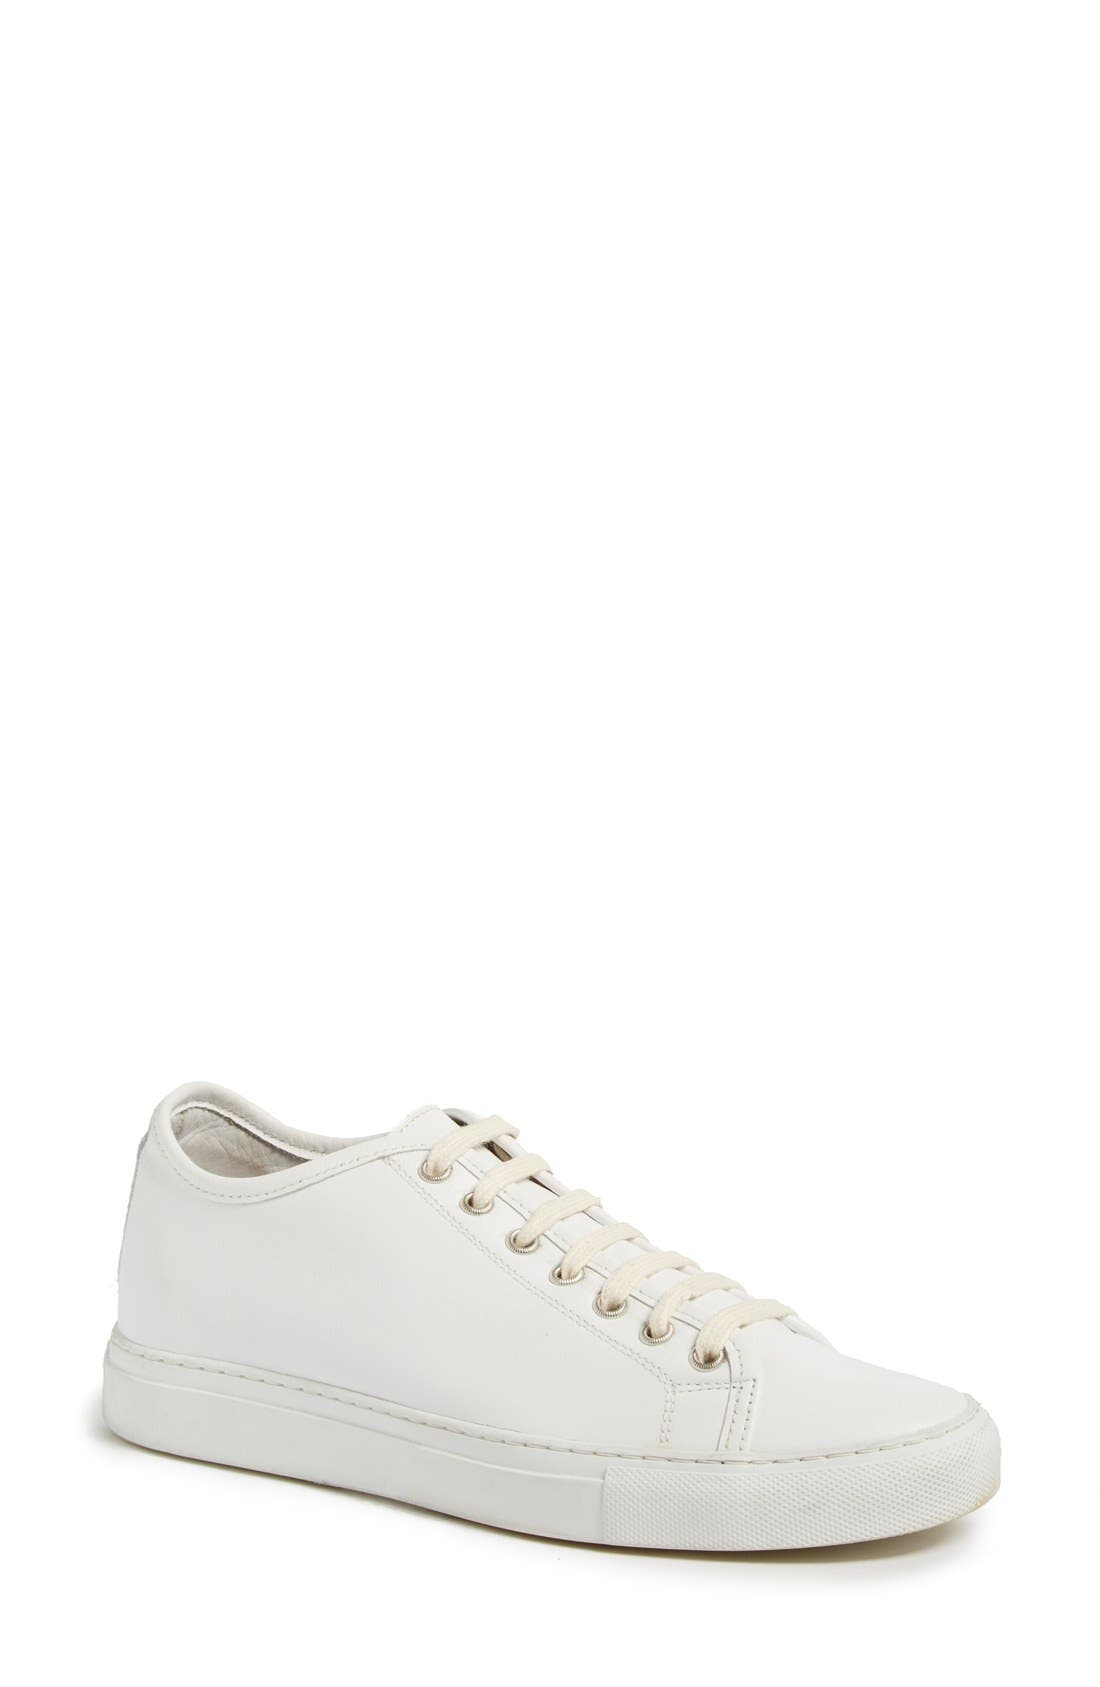 'Frida' Sneaker,                         Main,                         color, 100